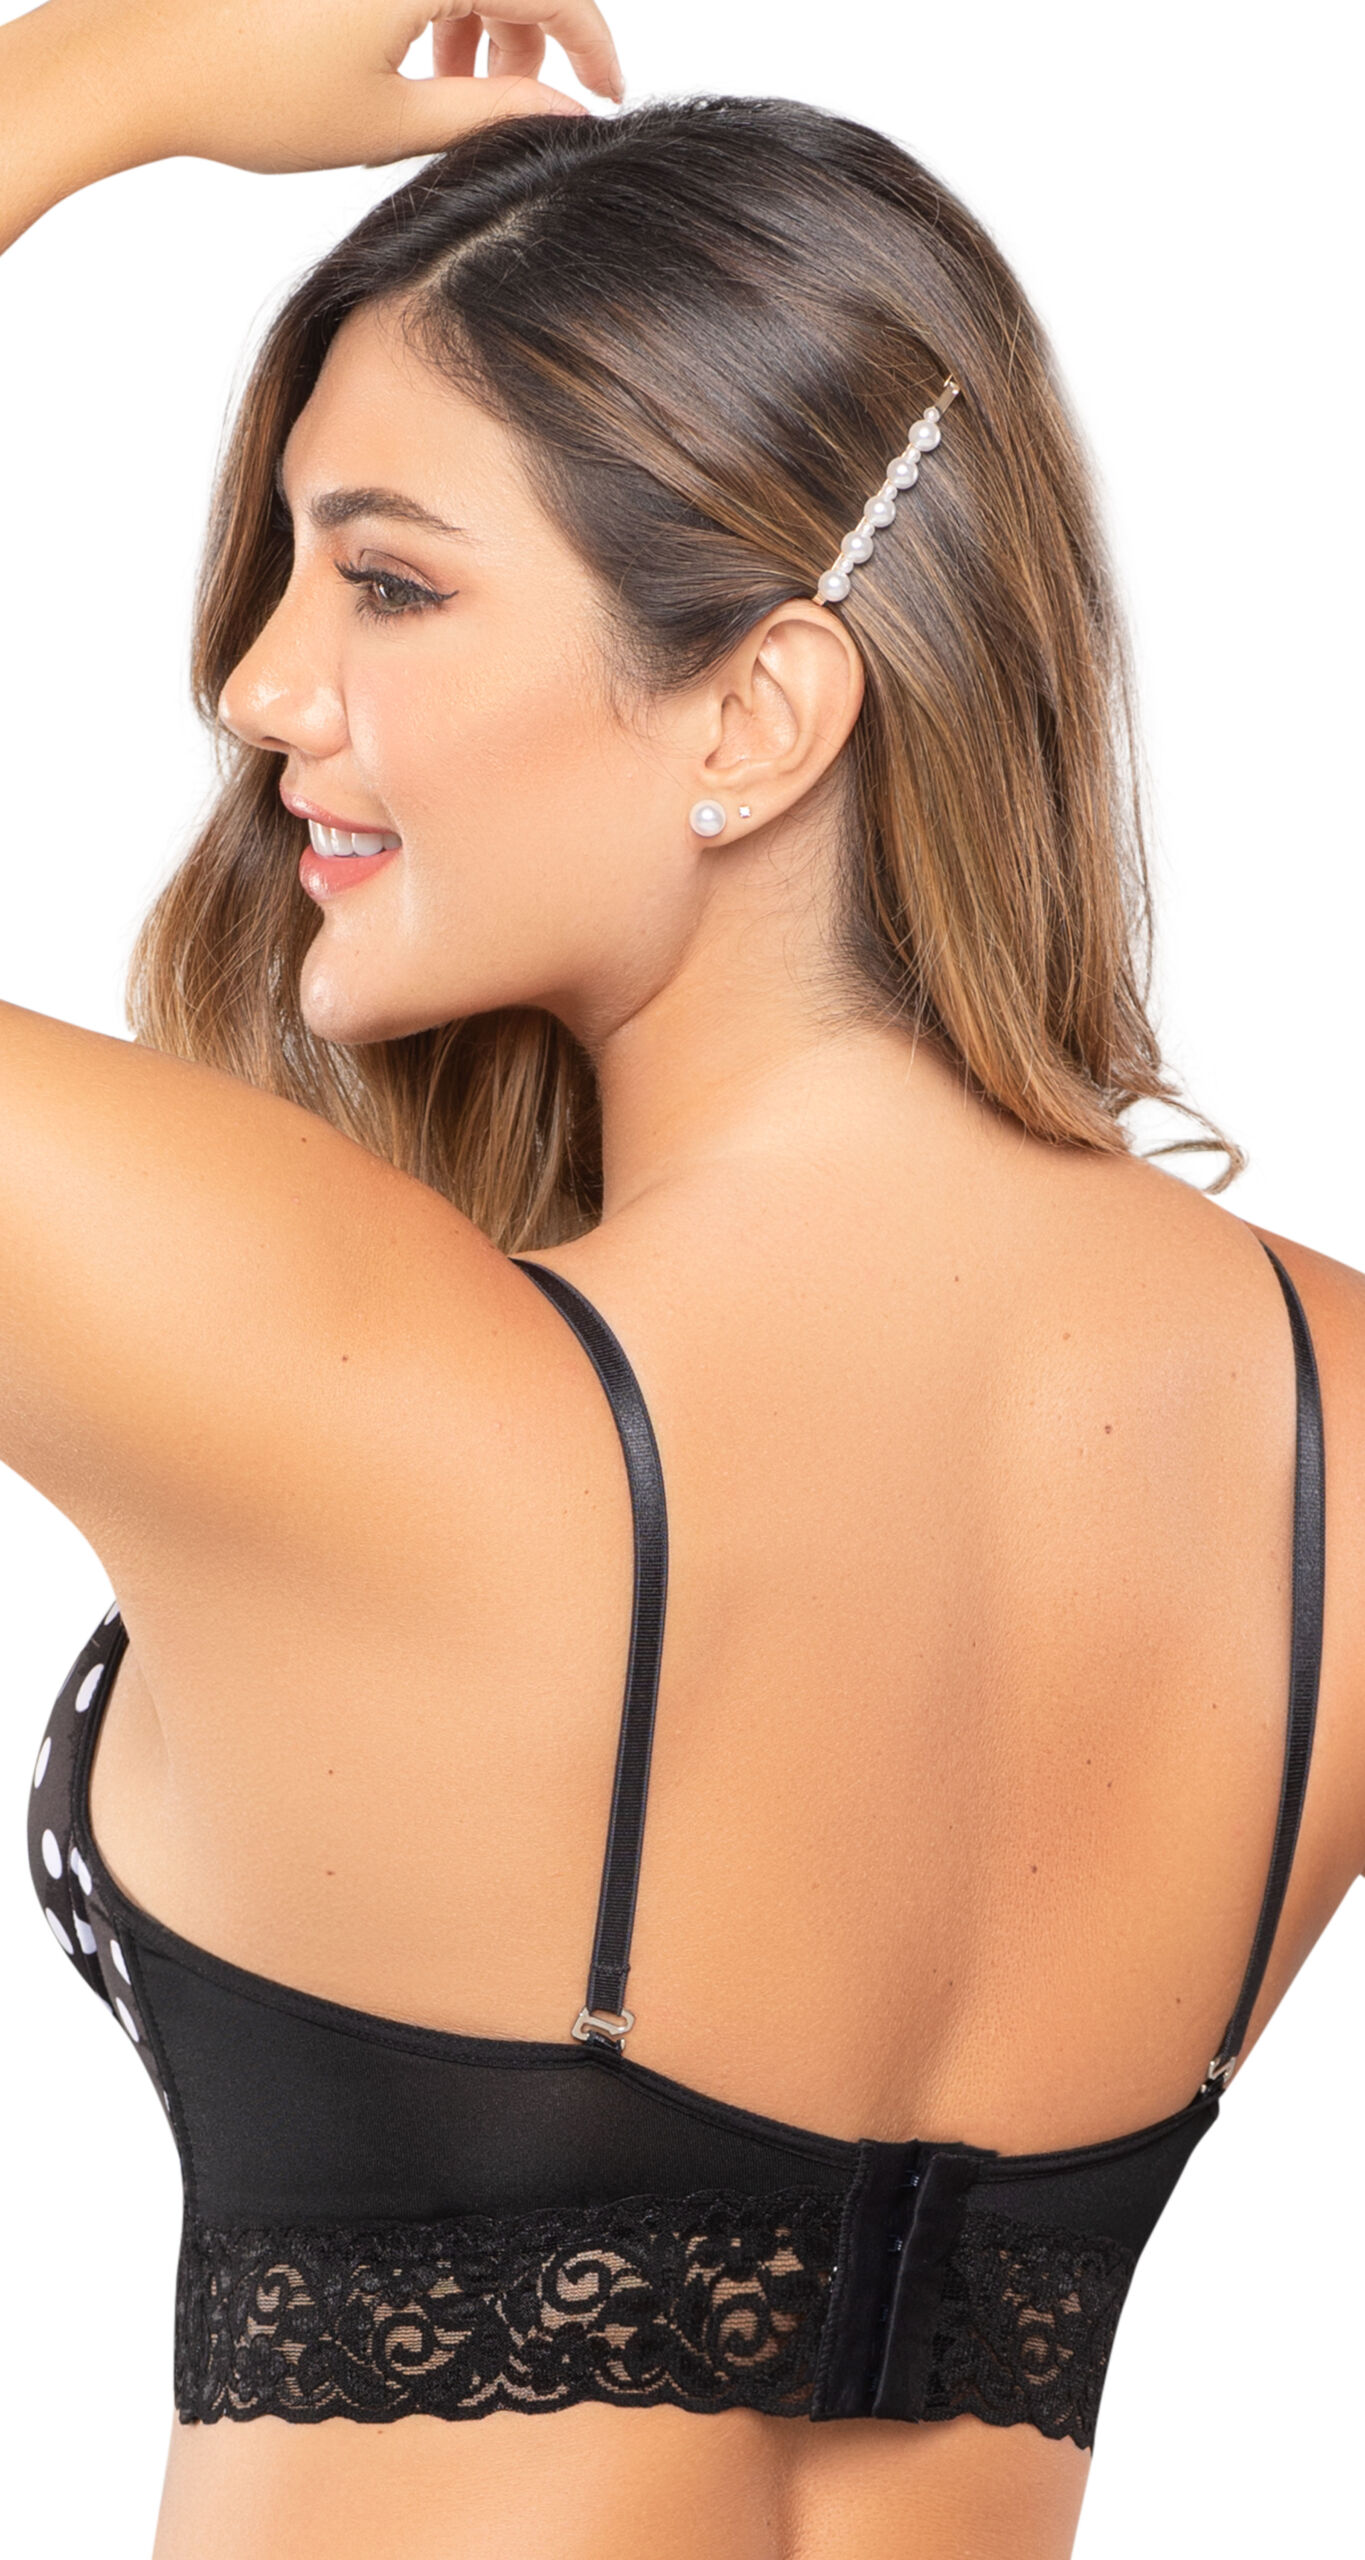 Brasier Bustier Realce Push Up